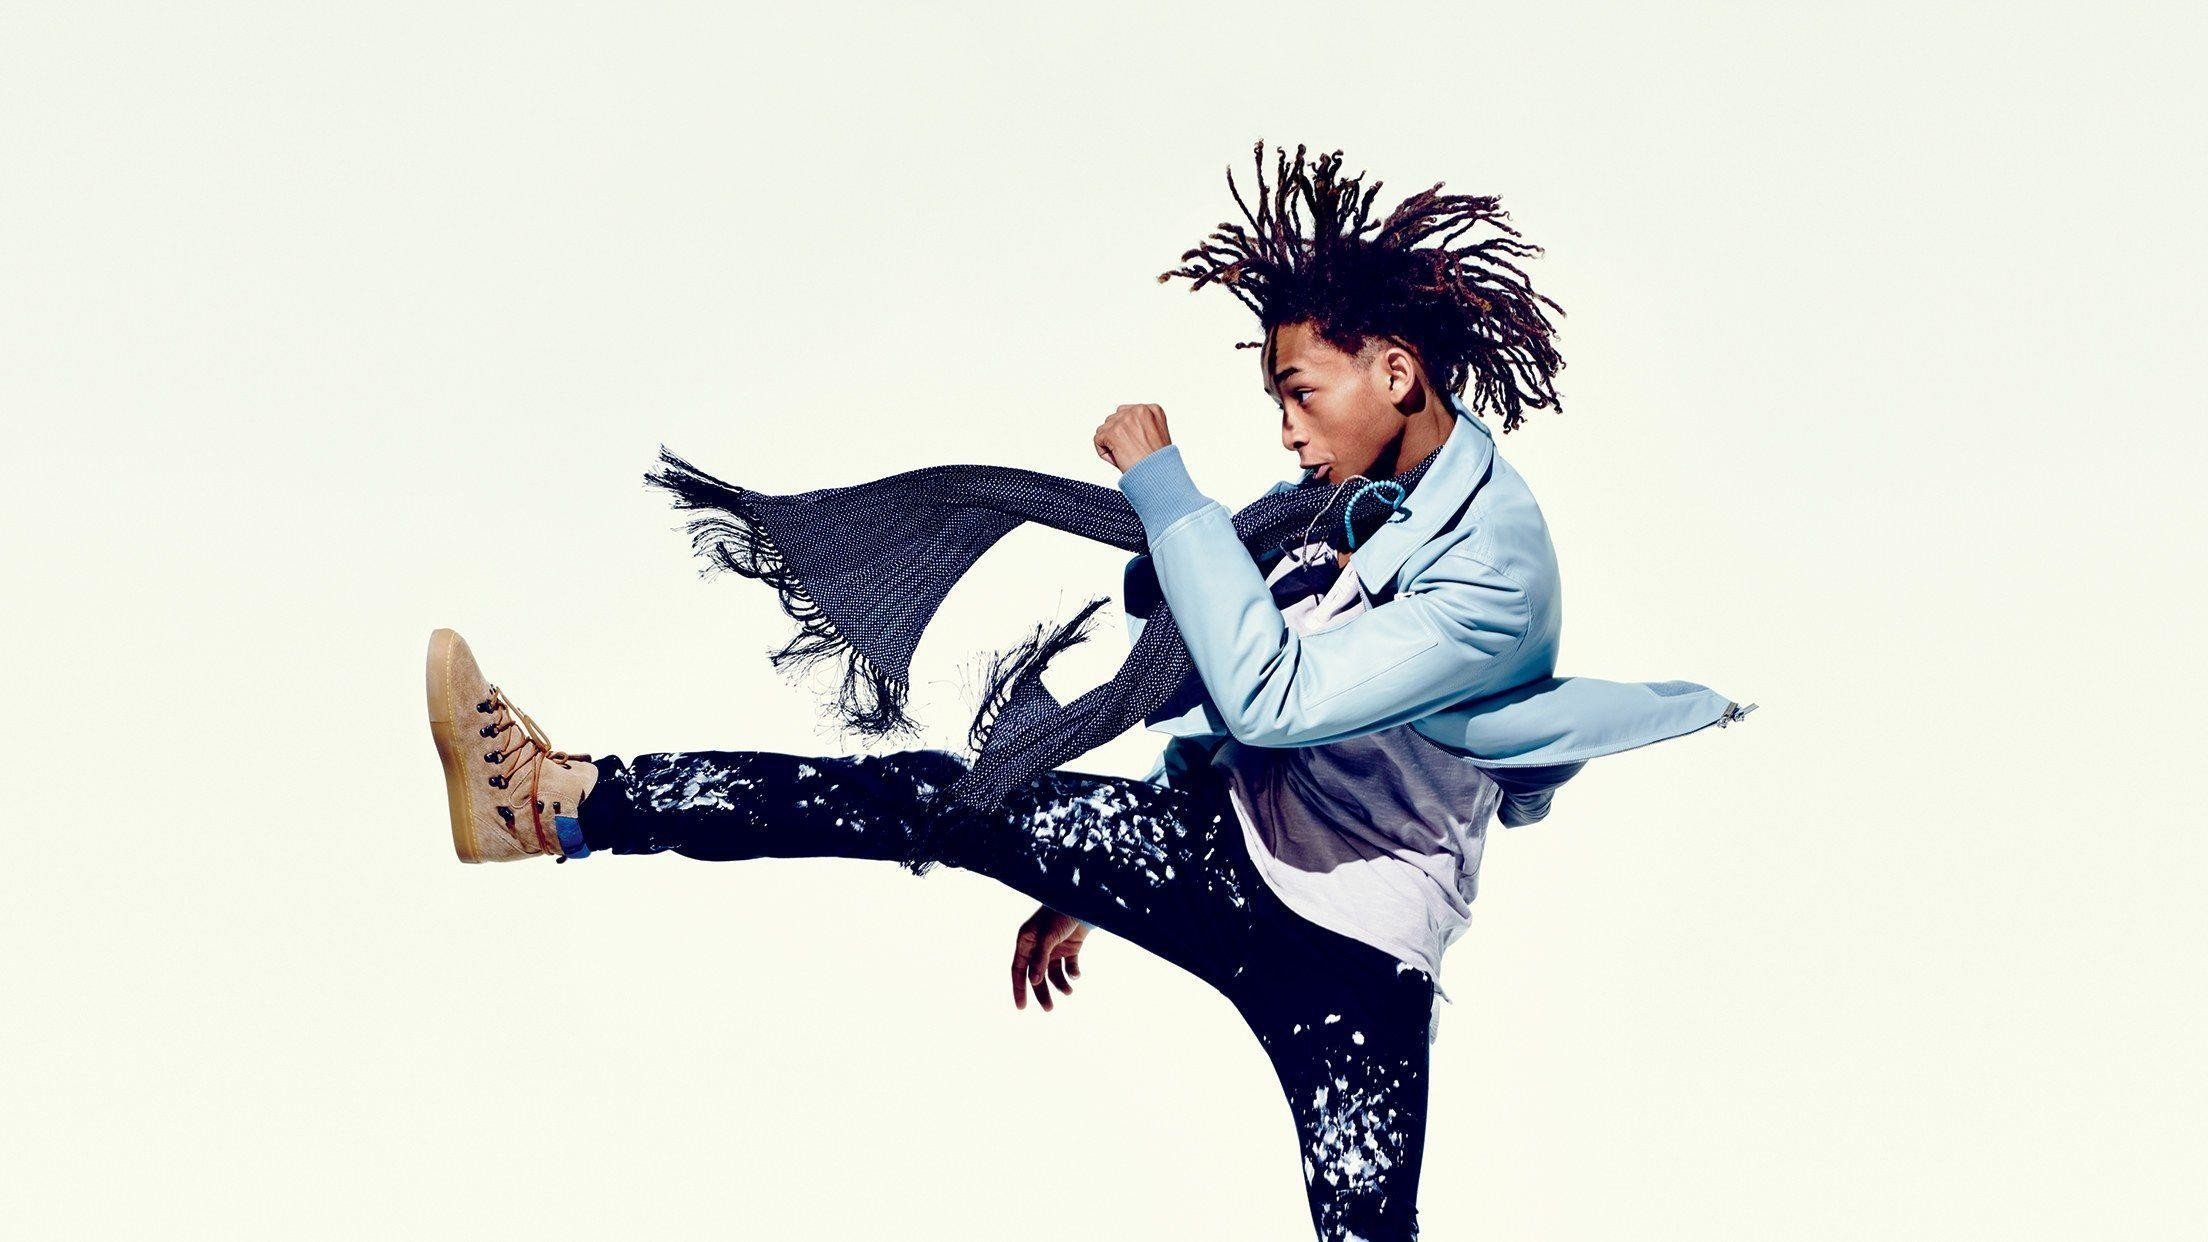 Jaden smith wallpaper 2018 74 images 1333x2000 collectionphotos 2016 newest jaden smith images 2013 2014 voltagebd Choice Image